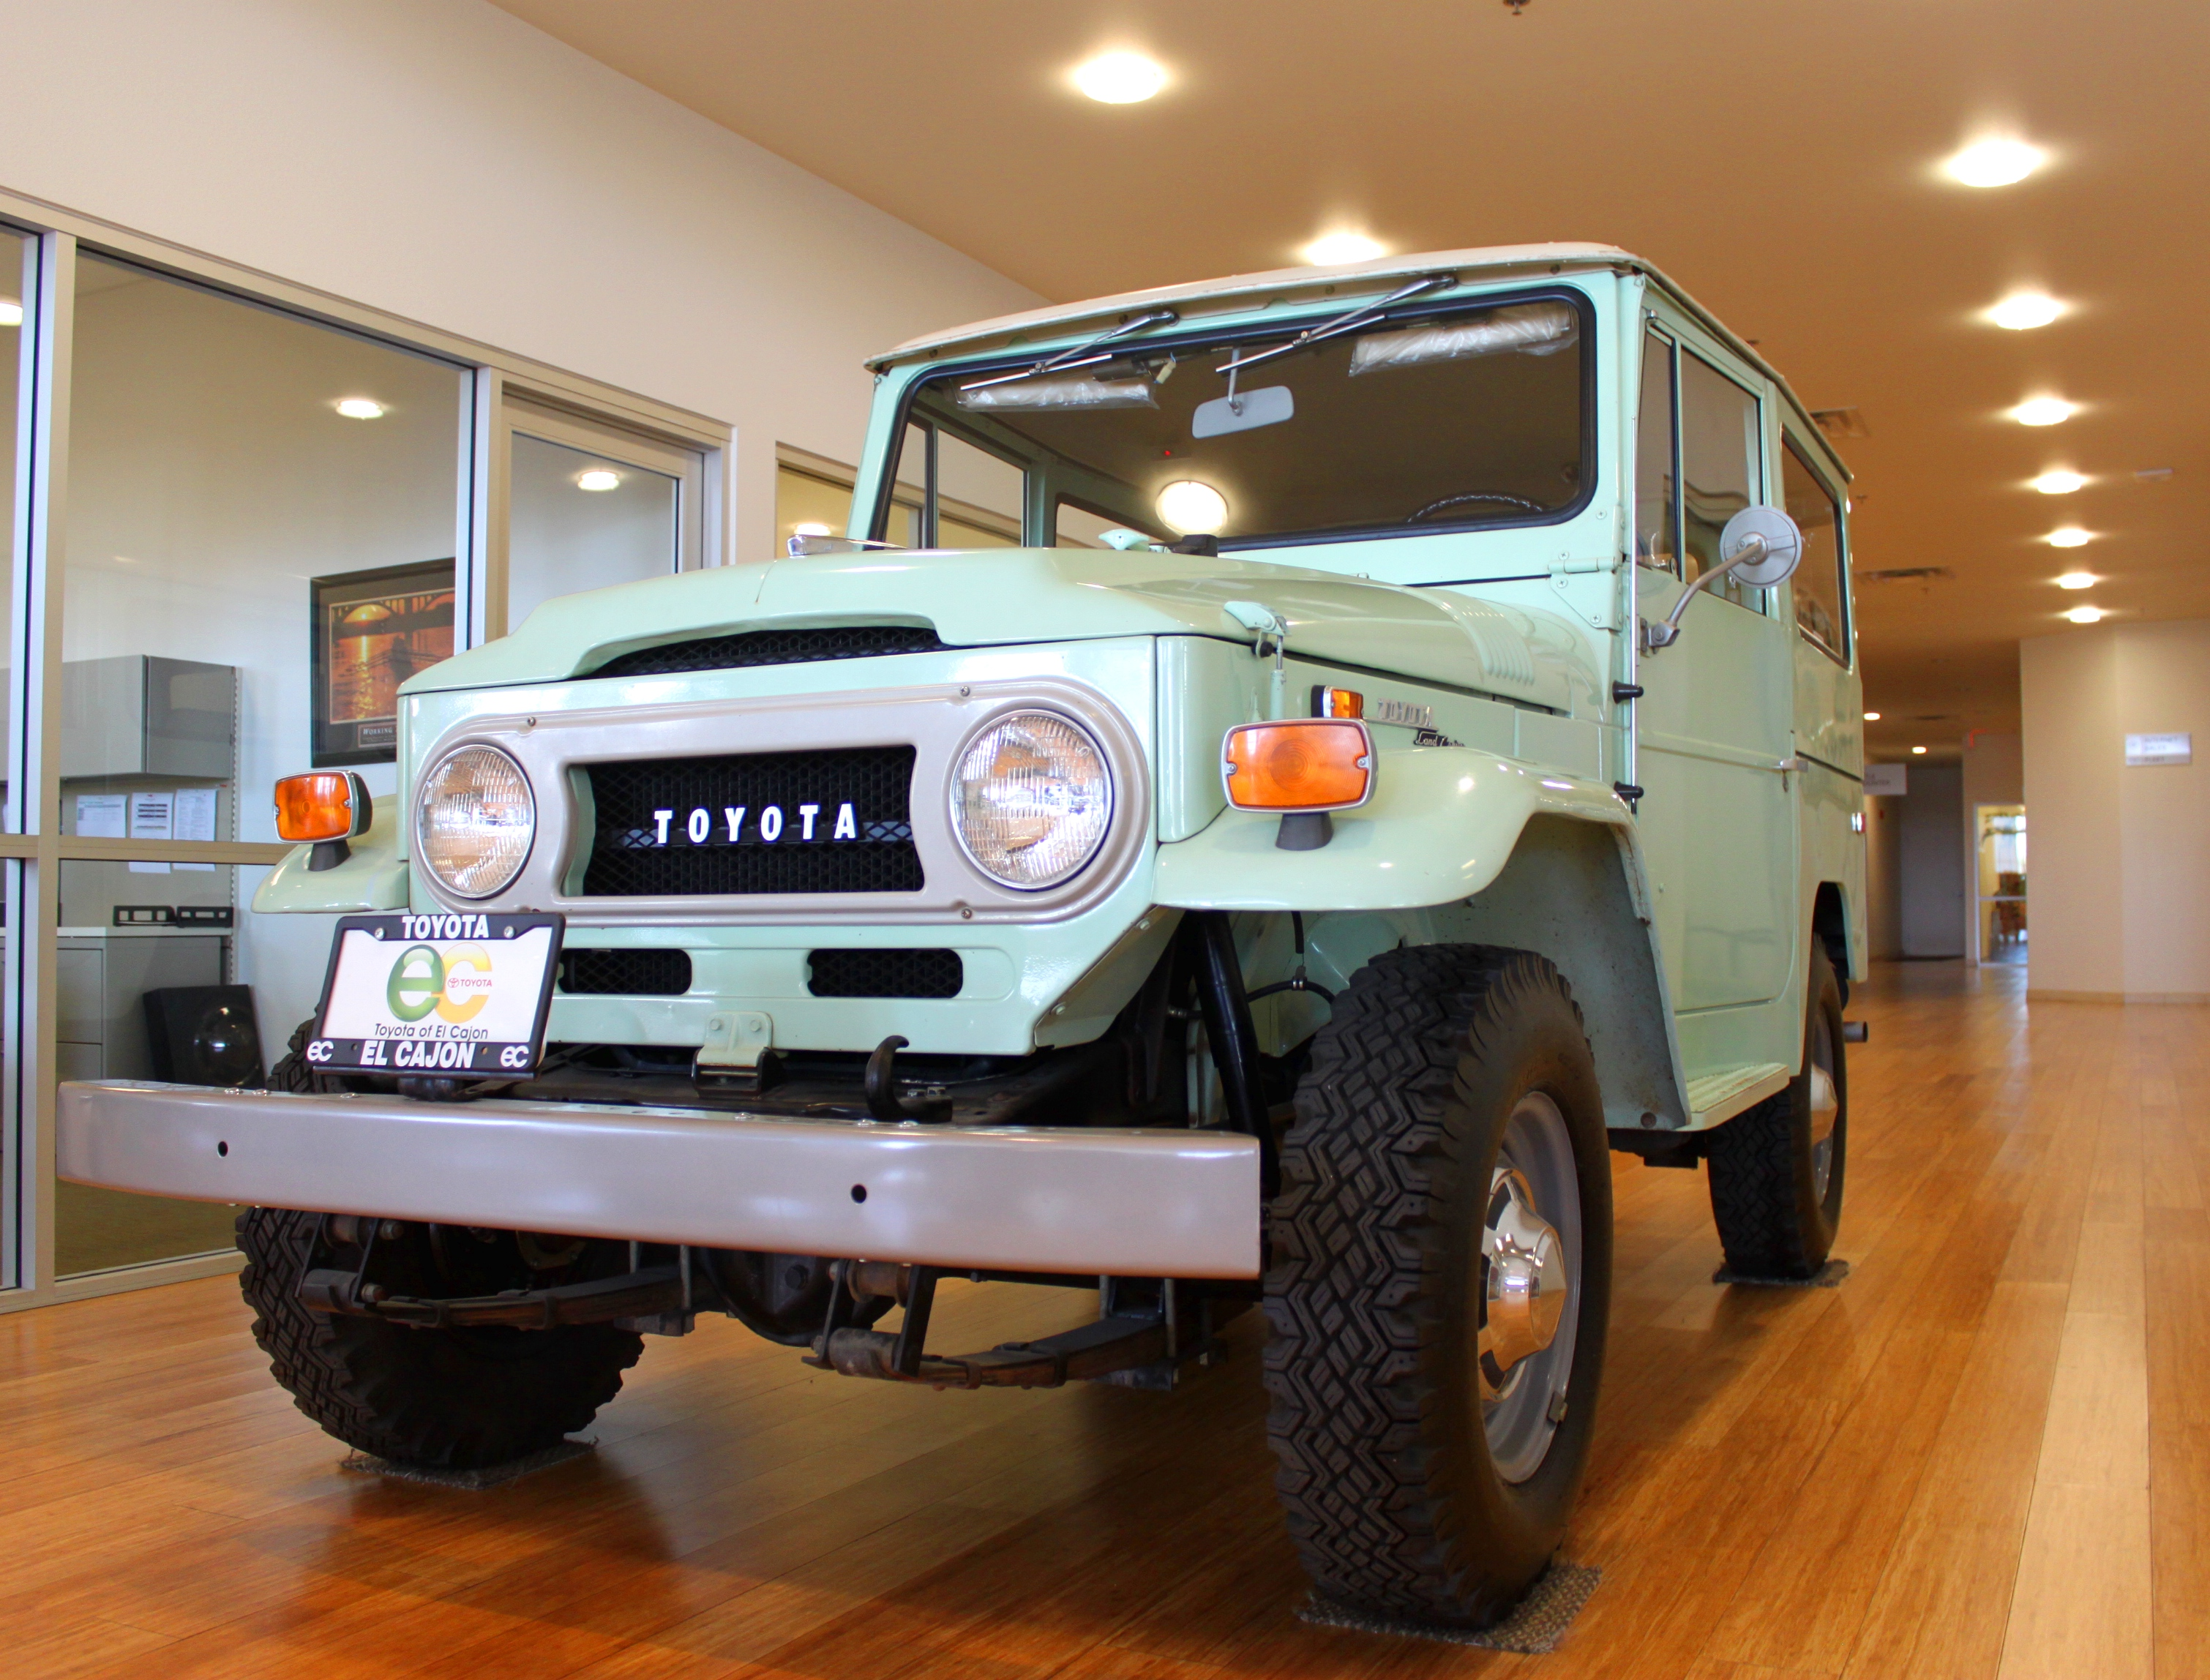 The 1970 Land Cruiser Fj40 Toyota Of El Cajon